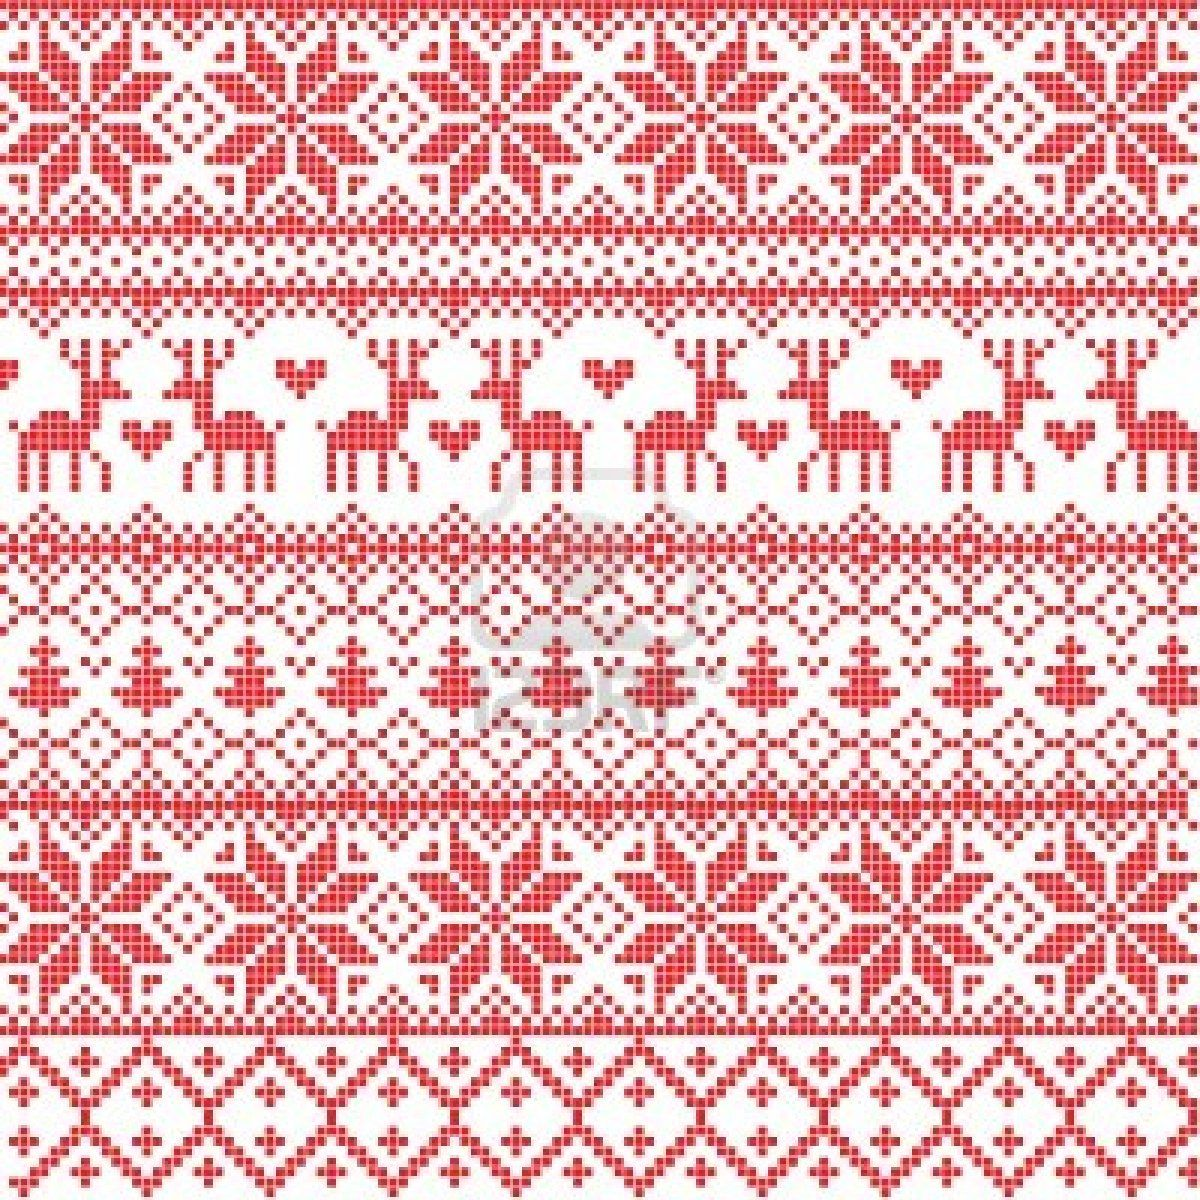 Illustrated Traditional Red Nordic Pattern Norwegian Knitting Christmas Knitting Knitting Charts